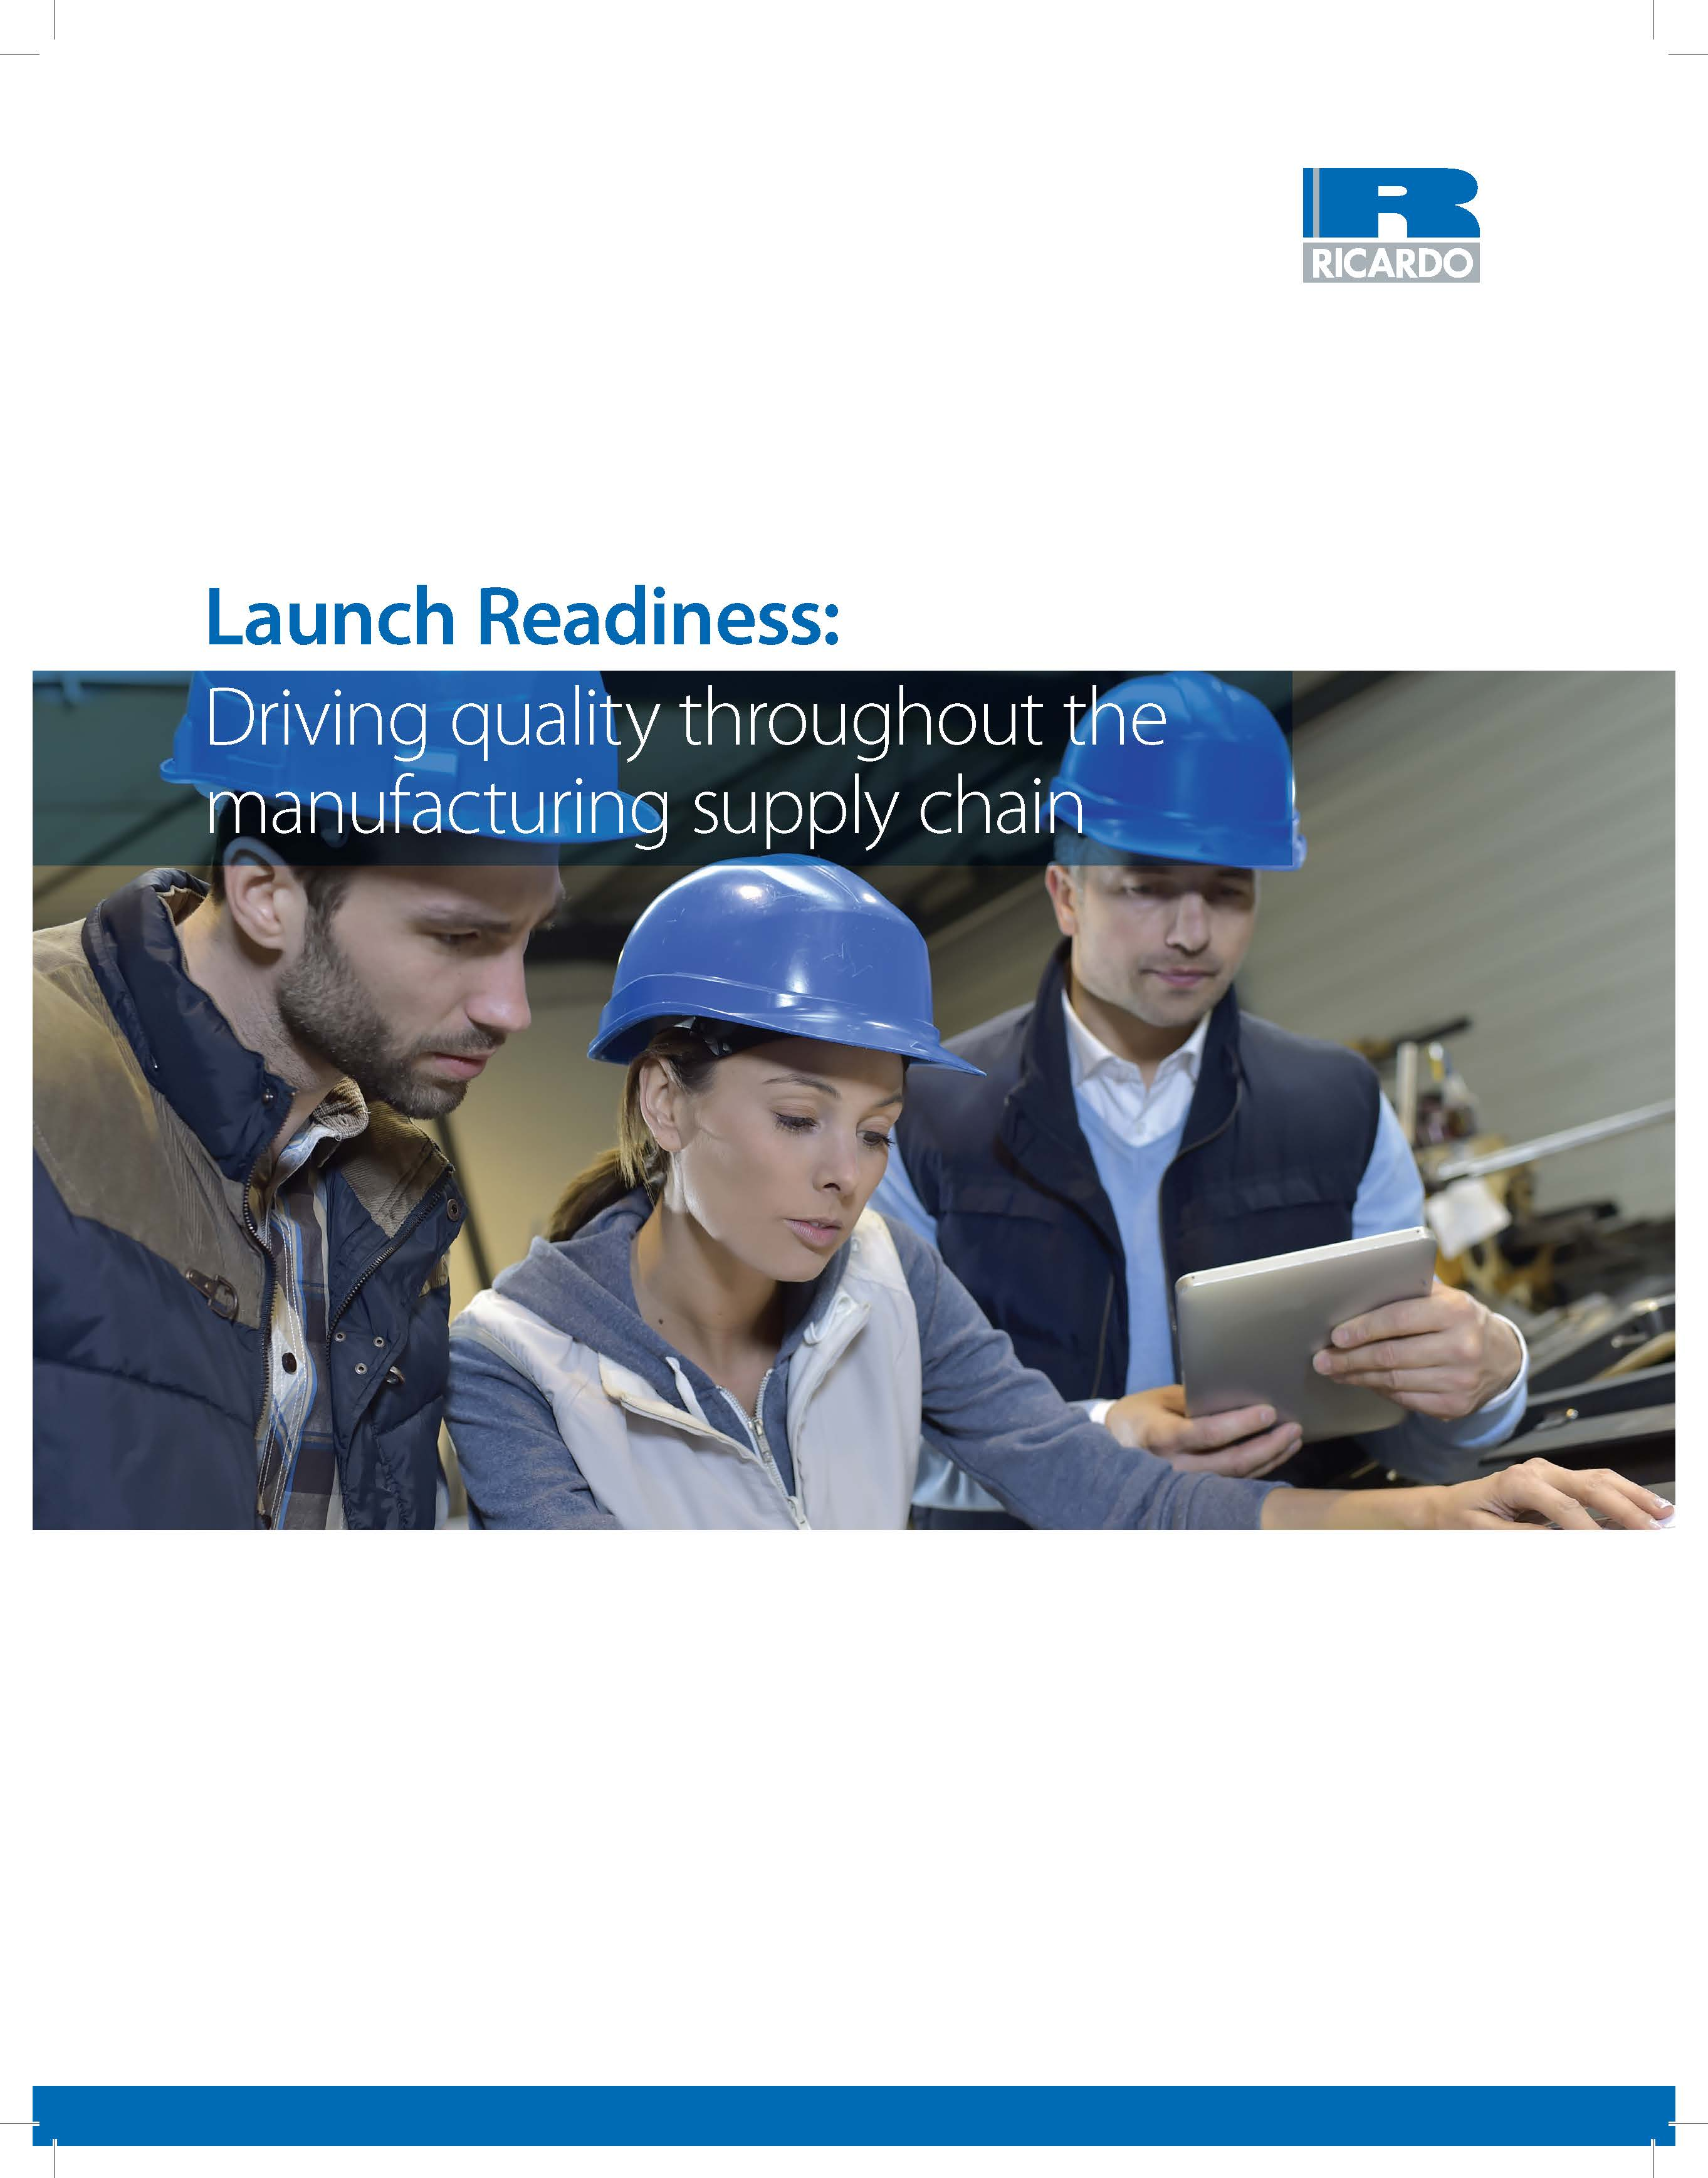 Launch Readiness: Driving quality throughout the manufacturing supply chain